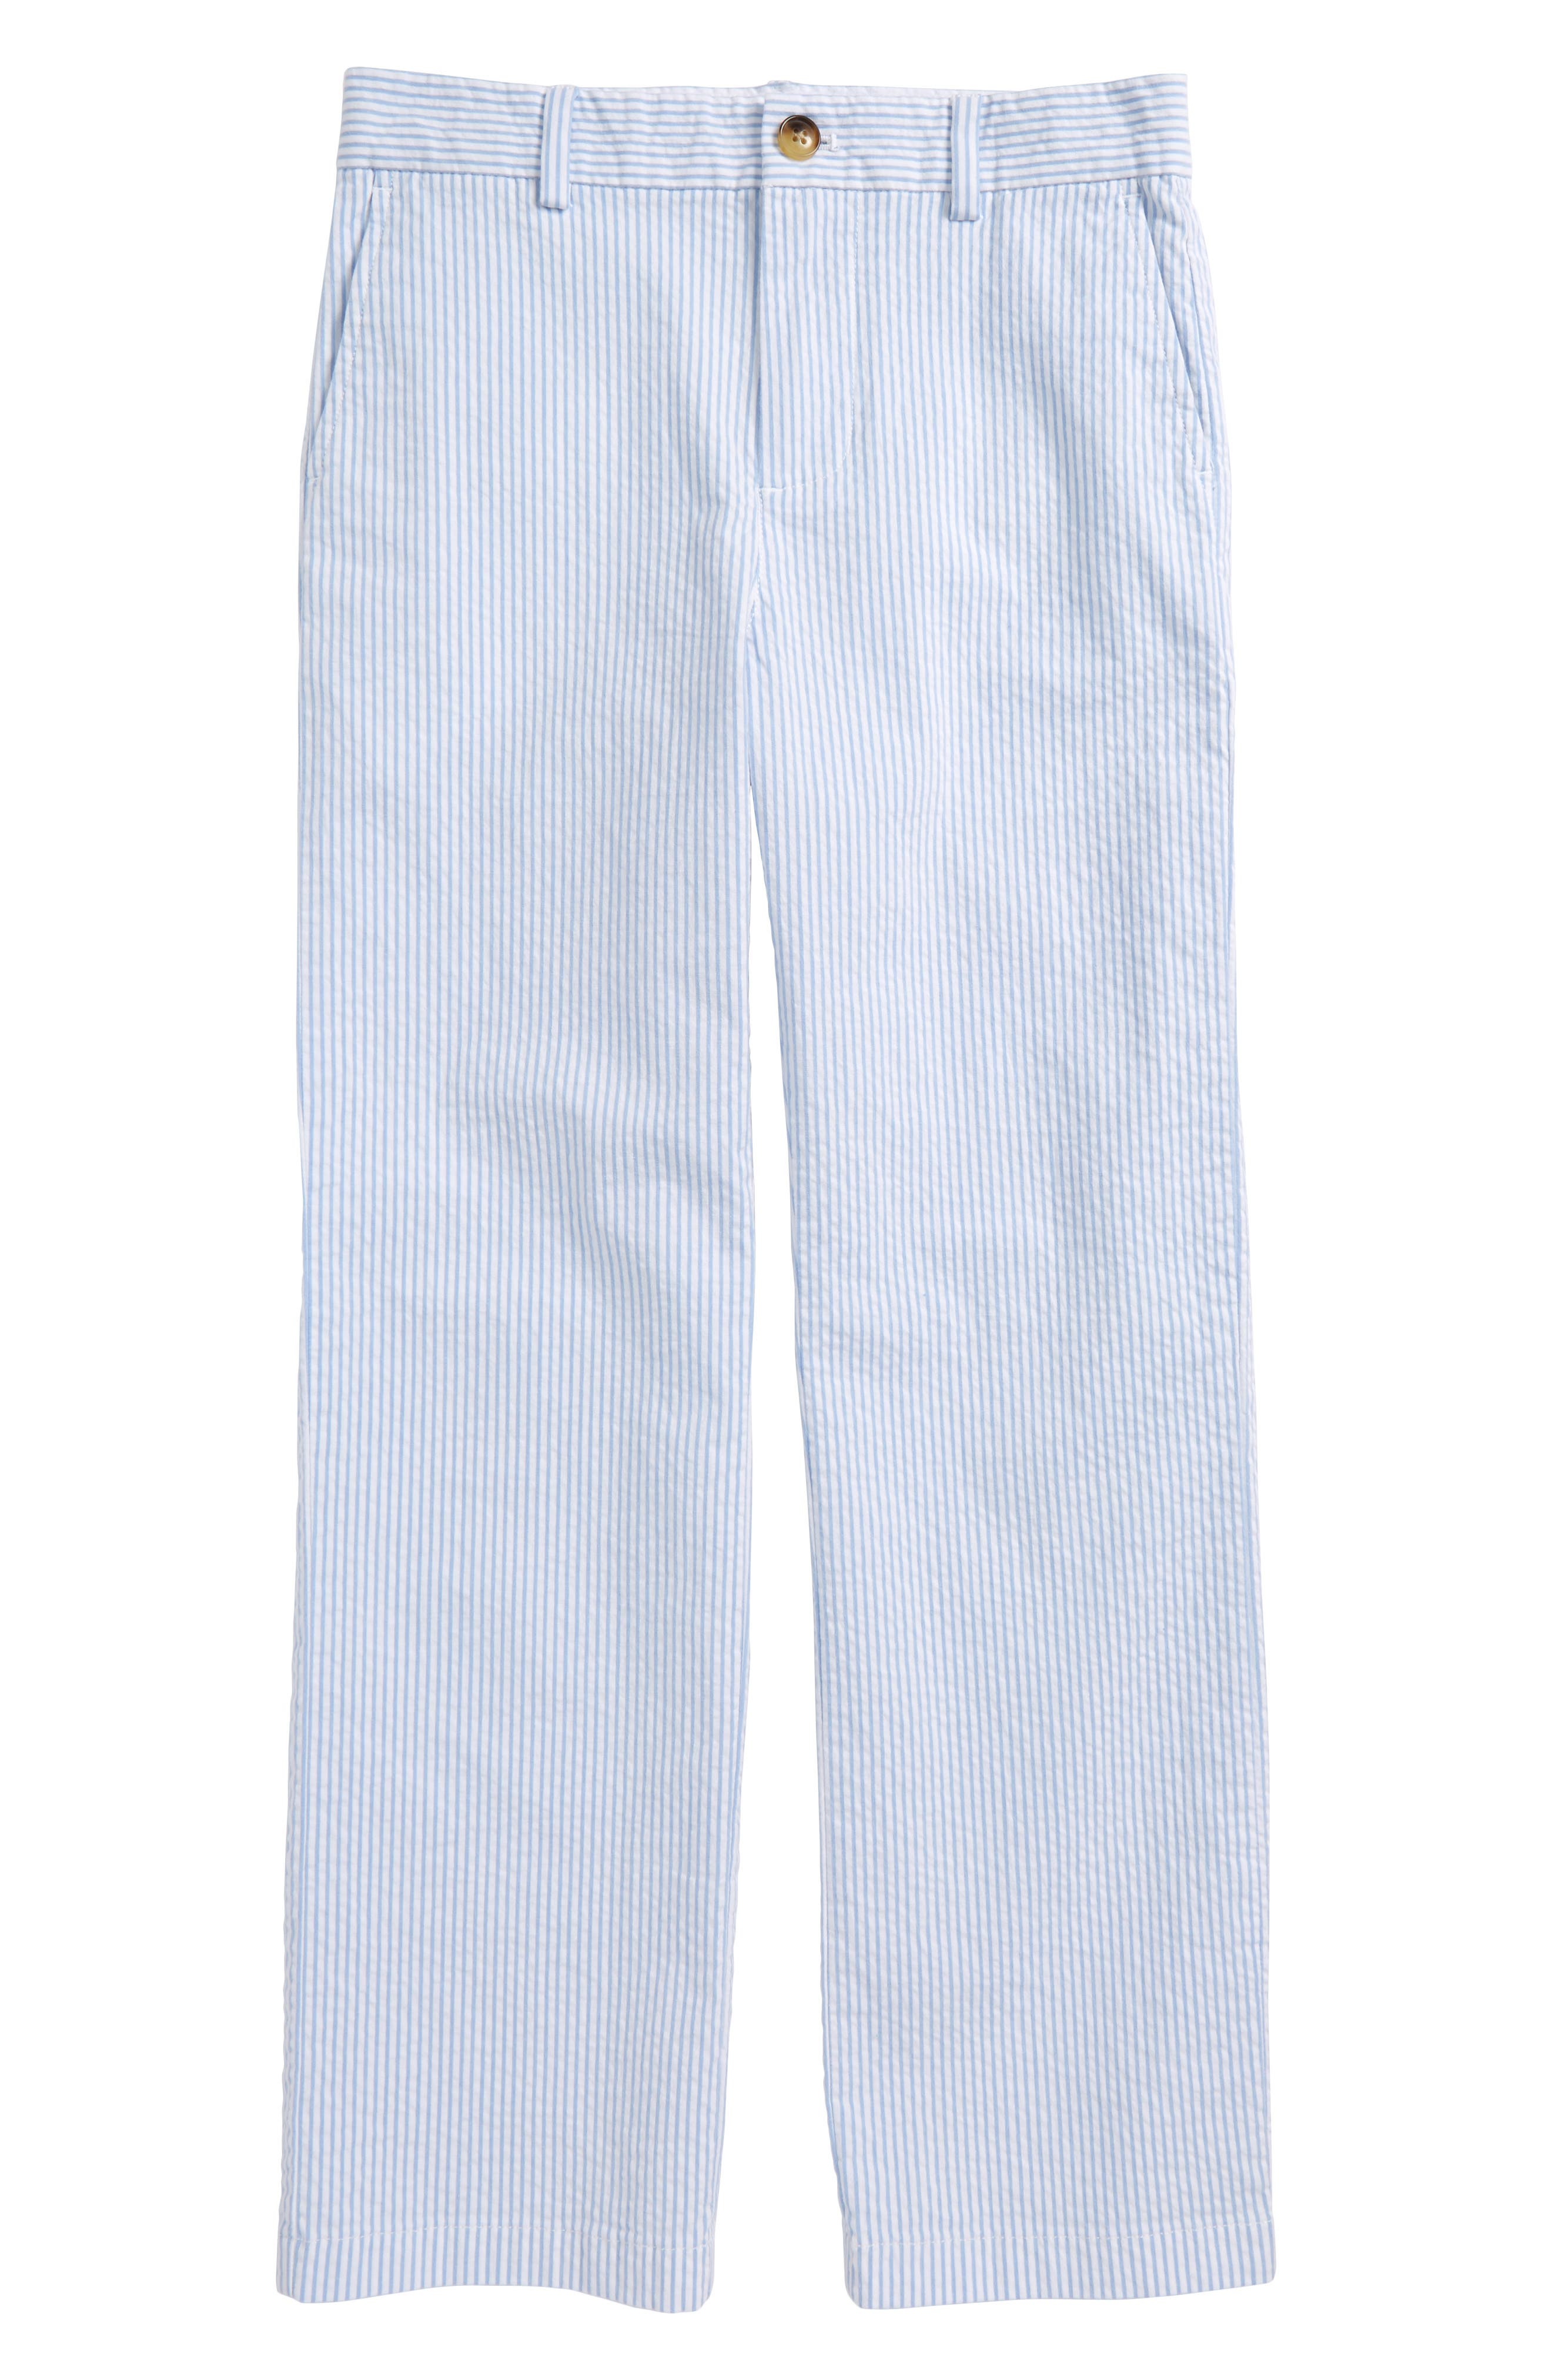 vineyard vines Seersucker Stripe Breaker Pants (Big Boys)